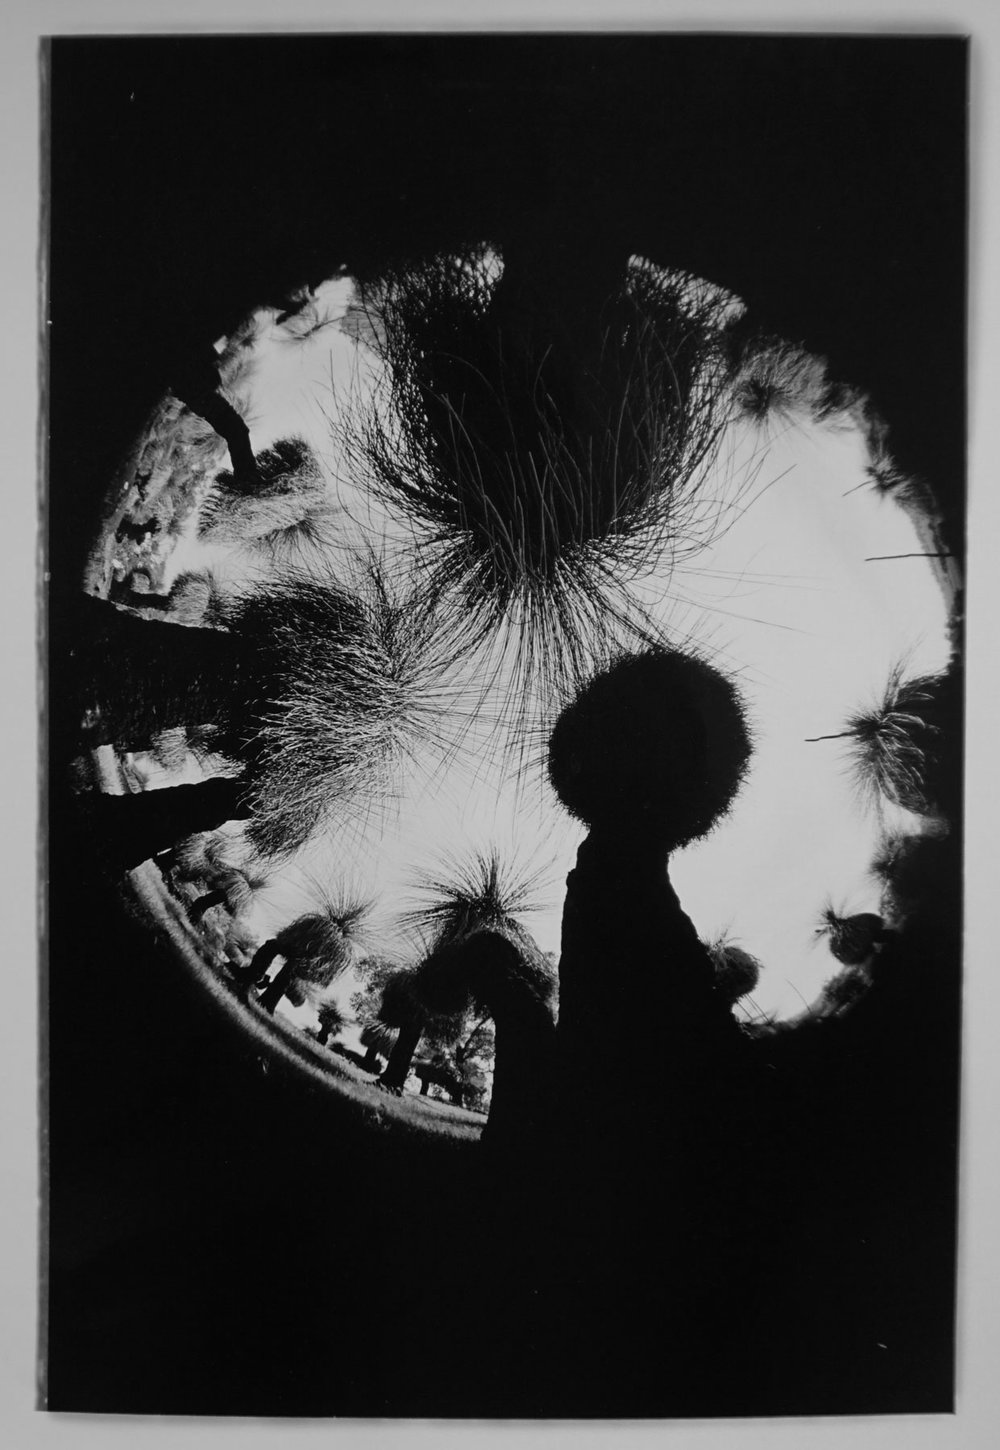 56. Richard Woldendorp, 'Zanthorrea, Bindoon WA', BW143a, taken in 1973, printed in 2012